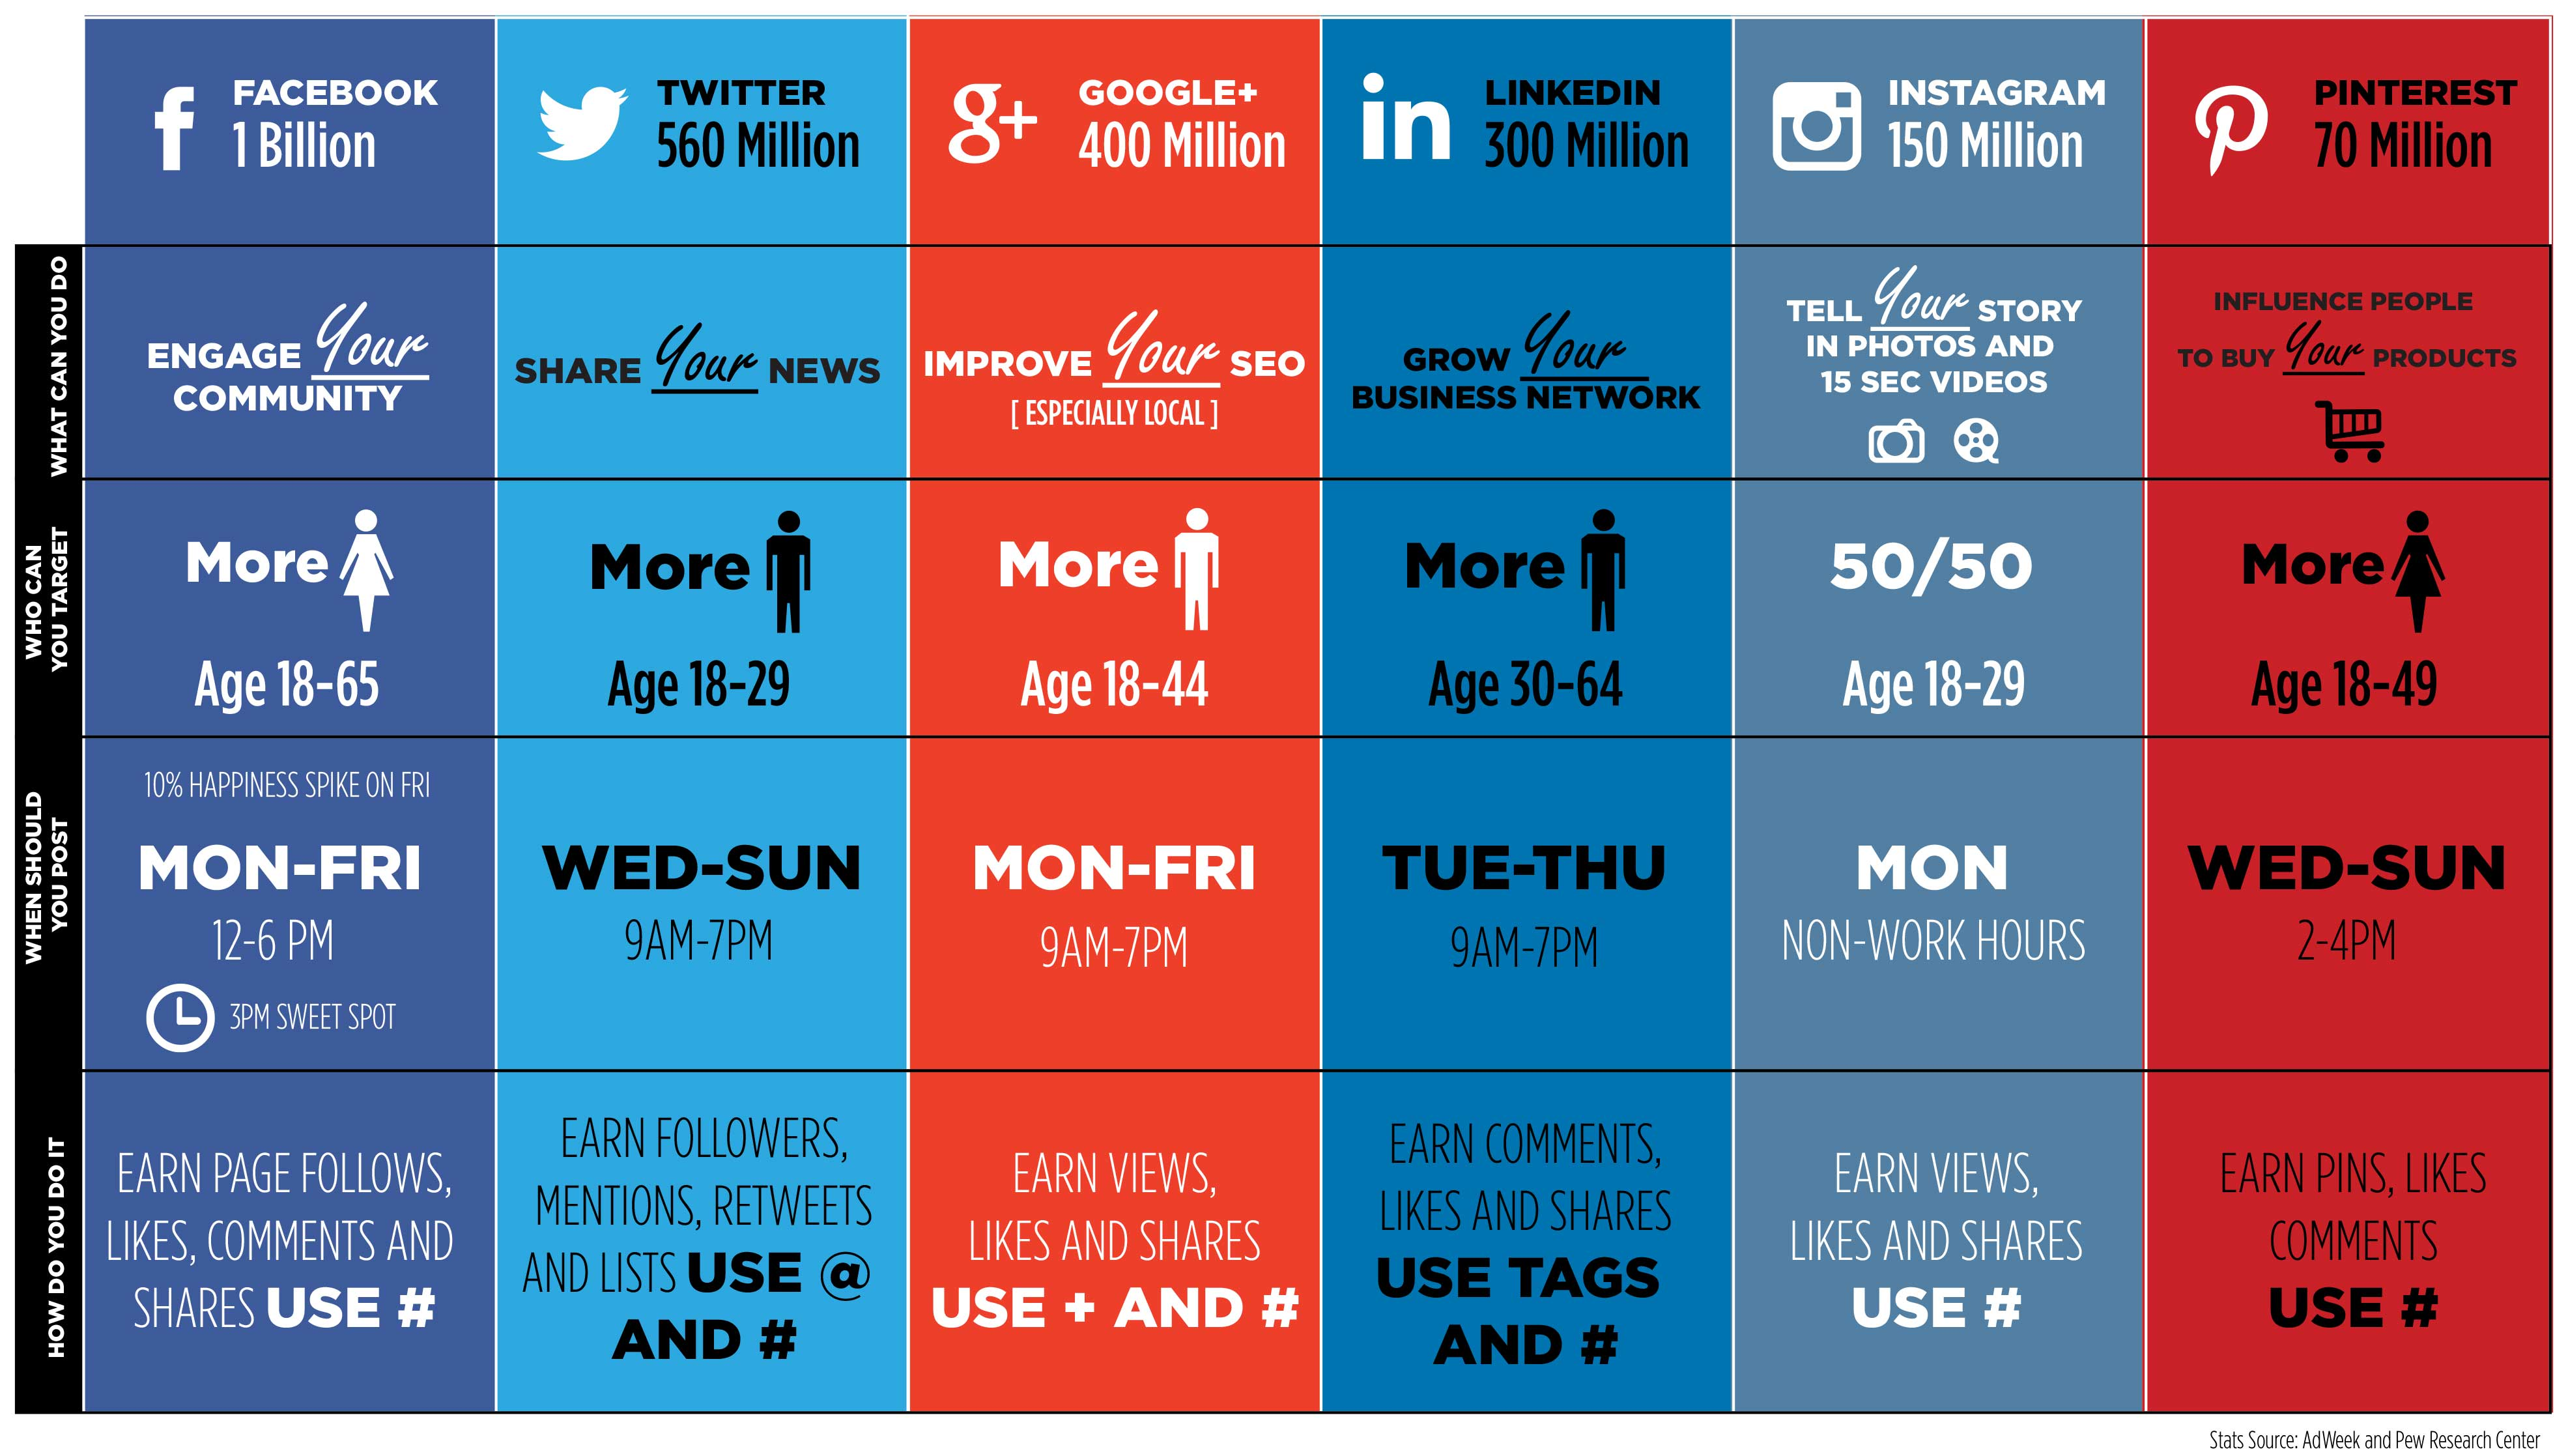 SOCIAL MEDIA OVERVIEW FOR BUSINESSES